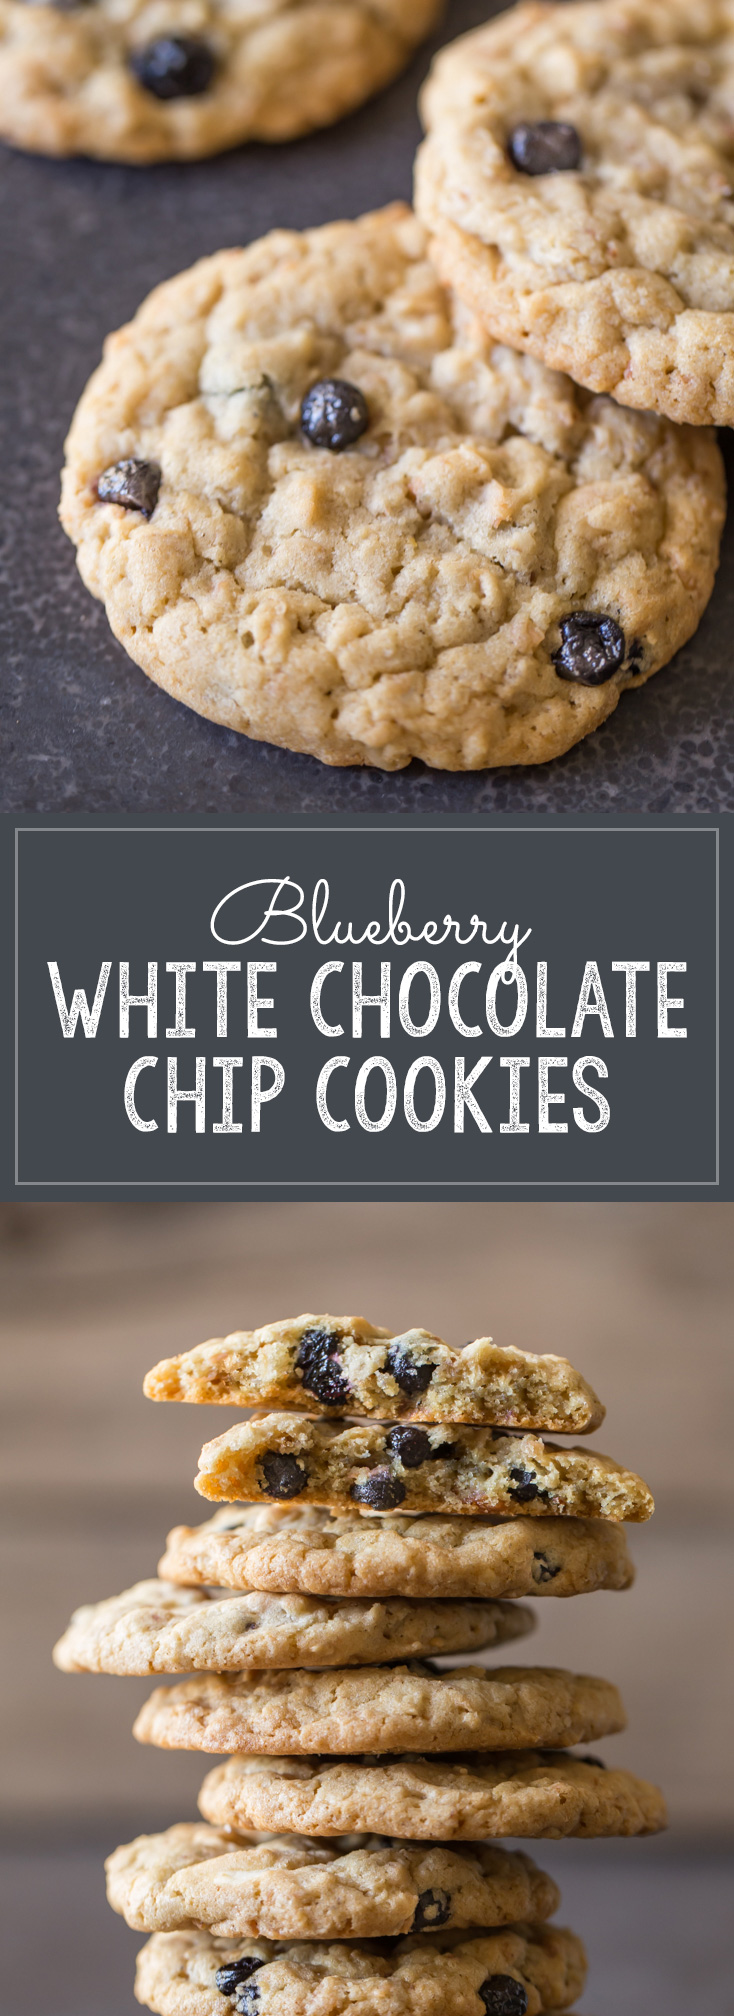 Blueberry White Chocolate Chip Cookies - A delightfully chewy cookie ...